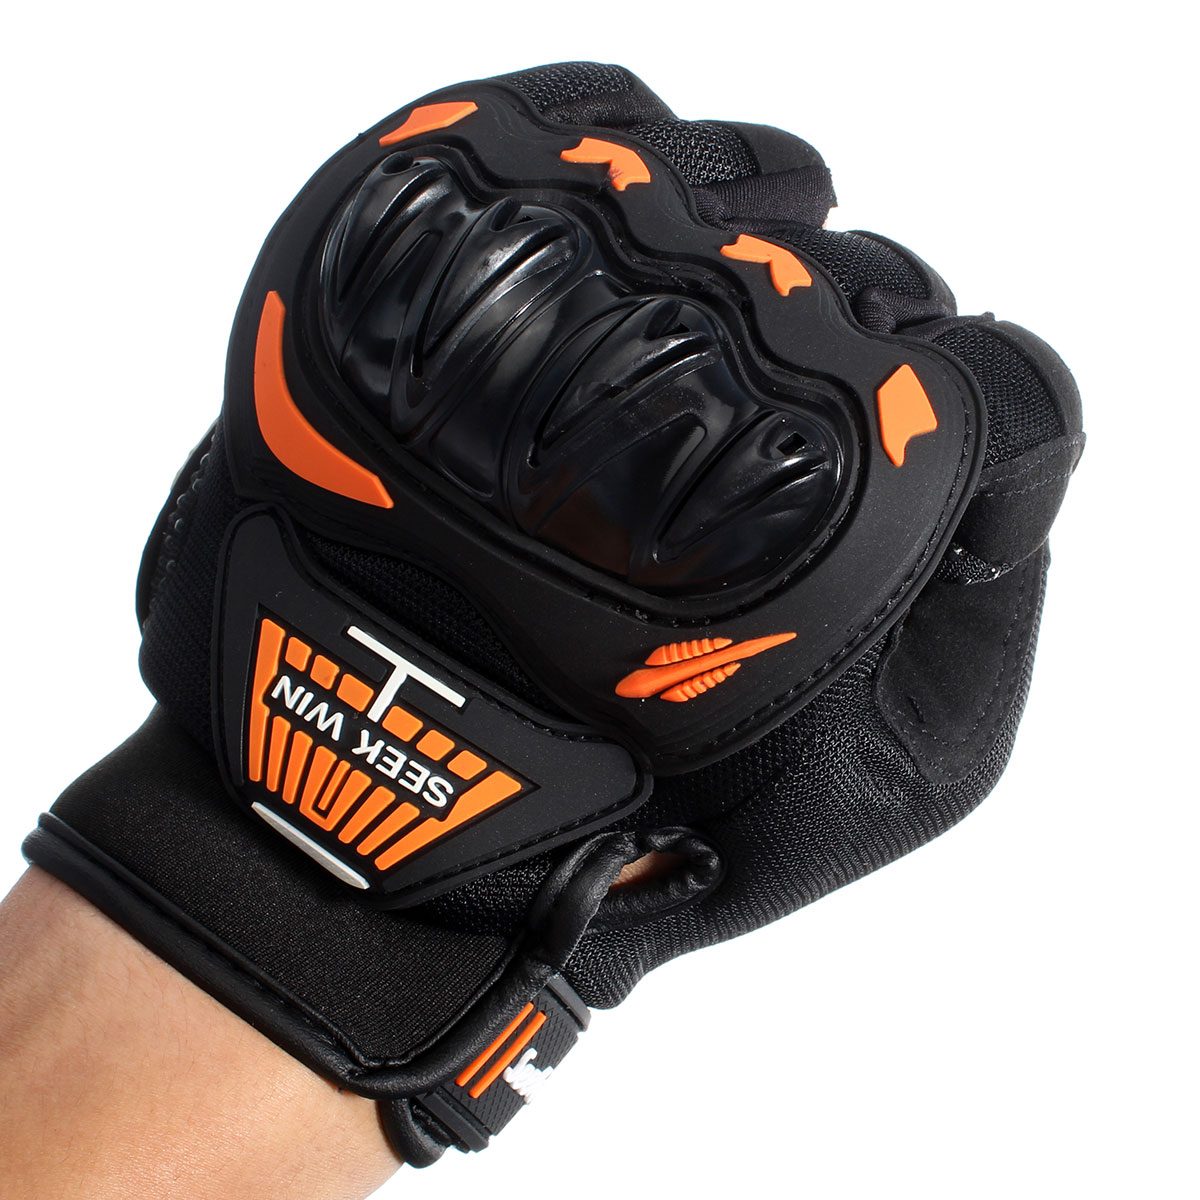 Motorcycle gloves xl - To Measure For Gloves Take A Tape Measure And Wrap It Around Your Hand Over The Knuckles And Make Fist